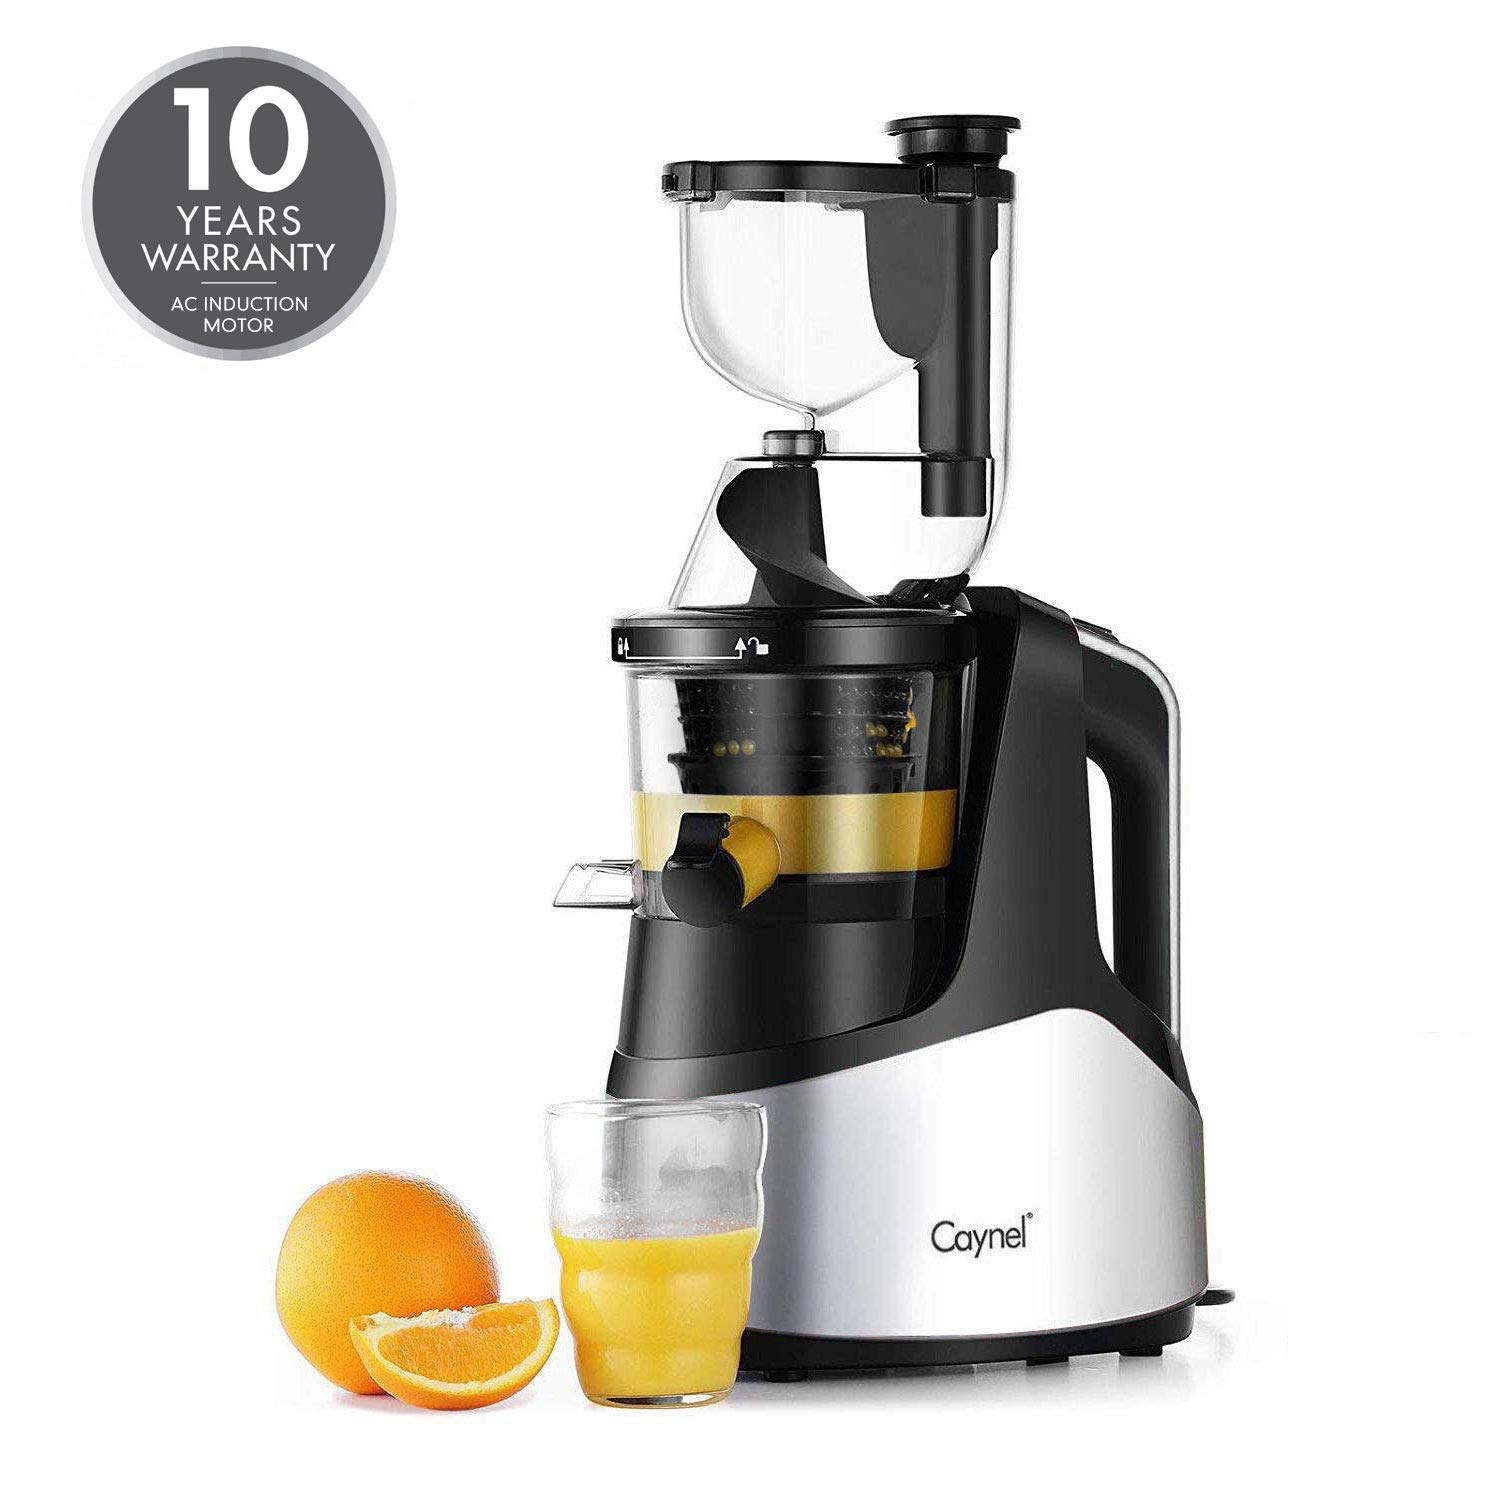 Slow Masticating Juicer Caynel Cold Press Extractor with 3'' Wide Chute for Fruits, Vegetables and Herbs, Quiet Durable Motor with Reverse Function, Smoothie Strainer Included, High Yield Vertical Juicer Easy Cleaning , BPA Free, Silver (SILVER) by CAYNEL